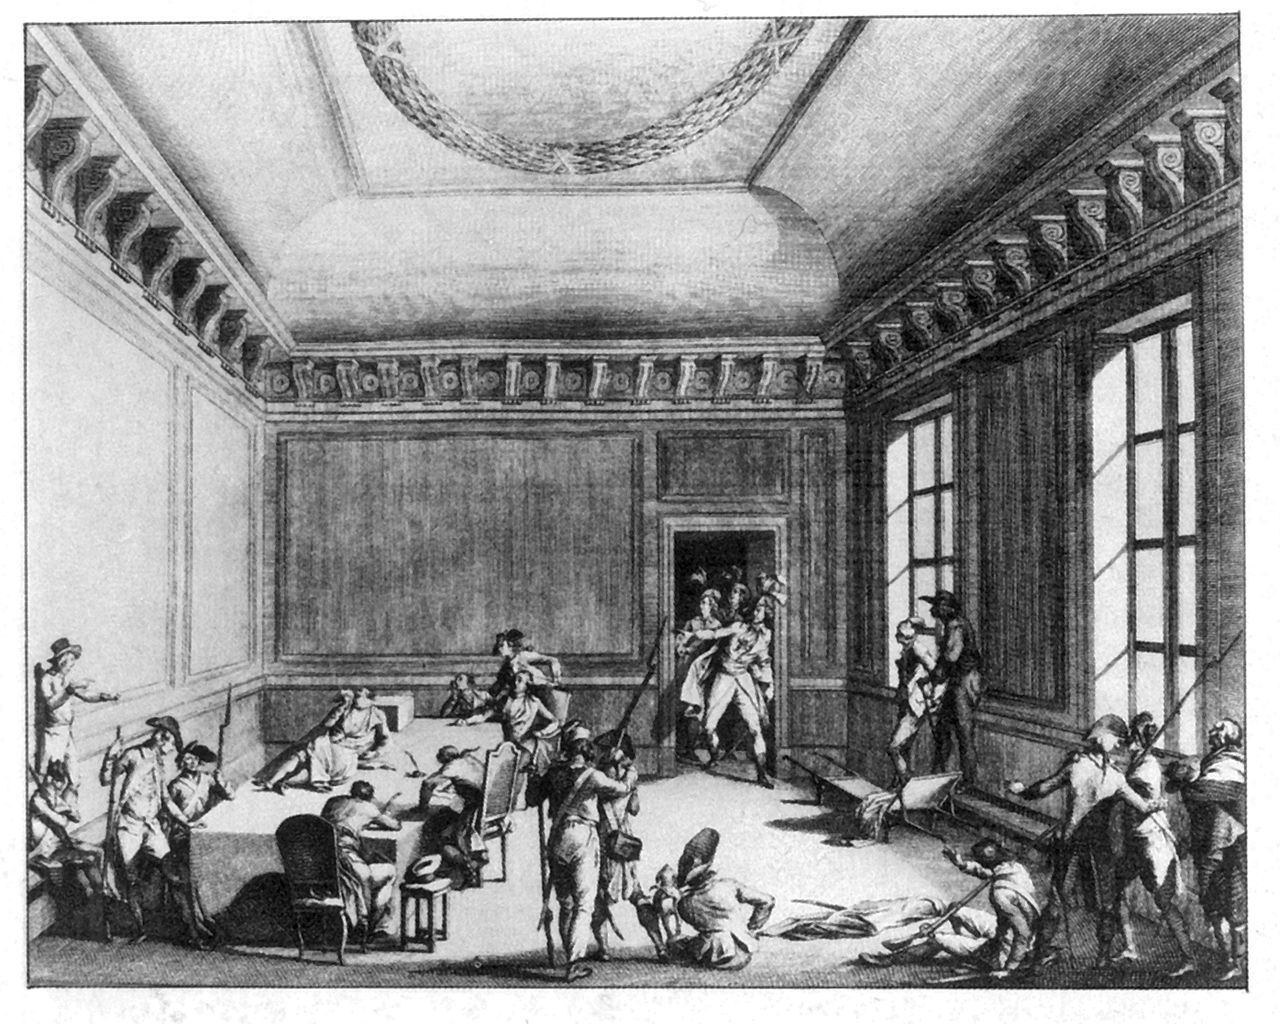 (1794, July 28) Robespierre (on the table) and his allies